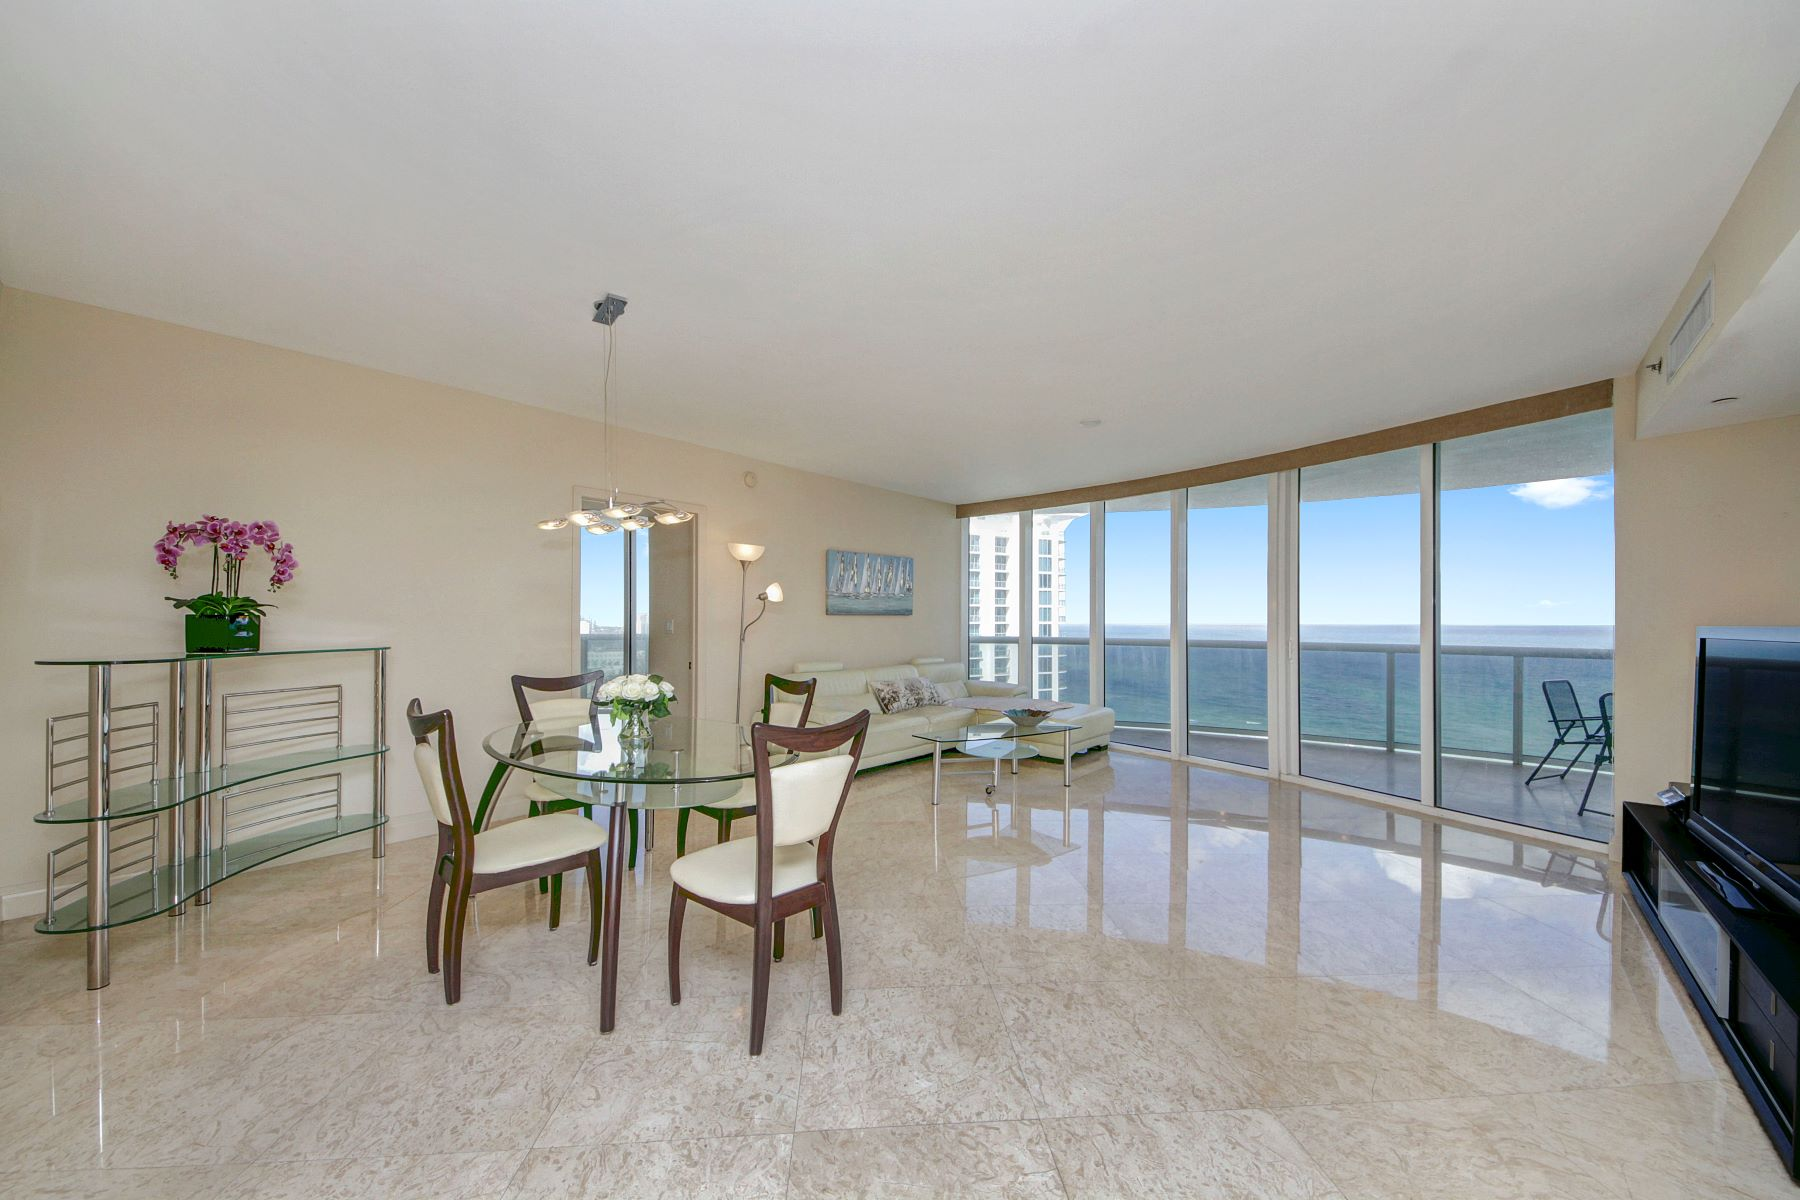 Condominium for Sale at 17201 Collins Ave 17201 Collins Ave 2008, Sunny Isles Beach, Florida, 33160 United States